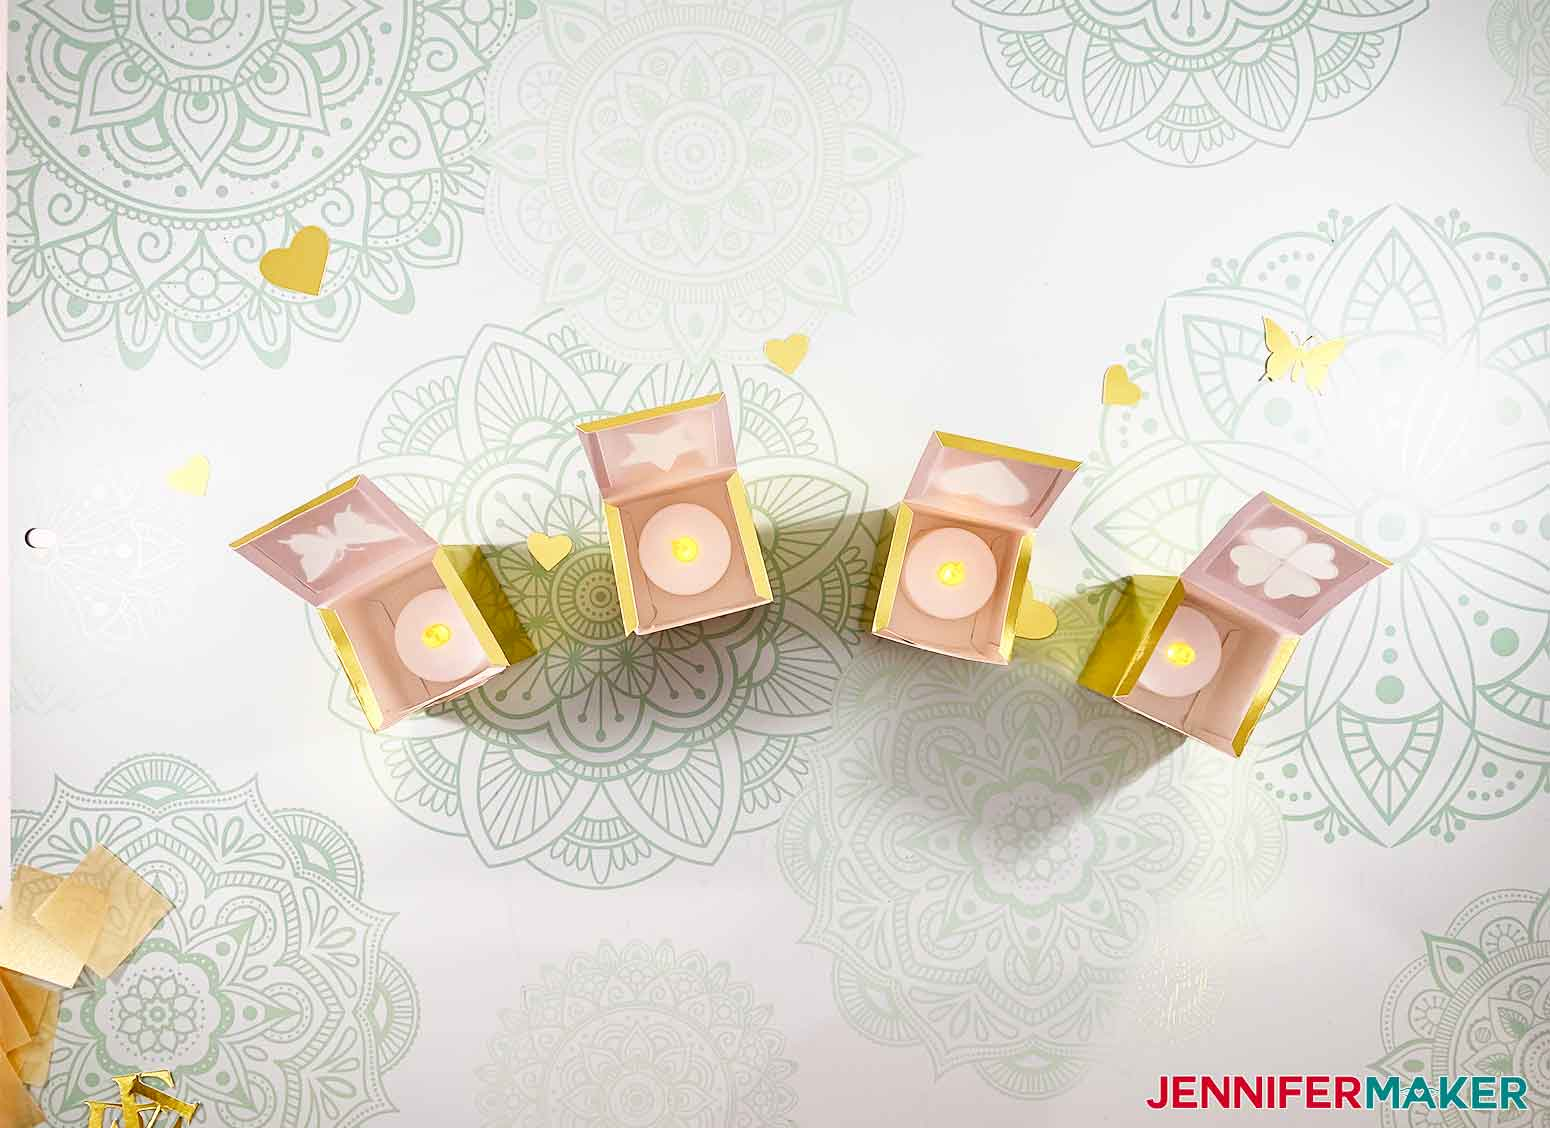 HOPE-Light-Up-Letter-Blocks-JenniferMaker-Overhead-Tealights-in-blocks